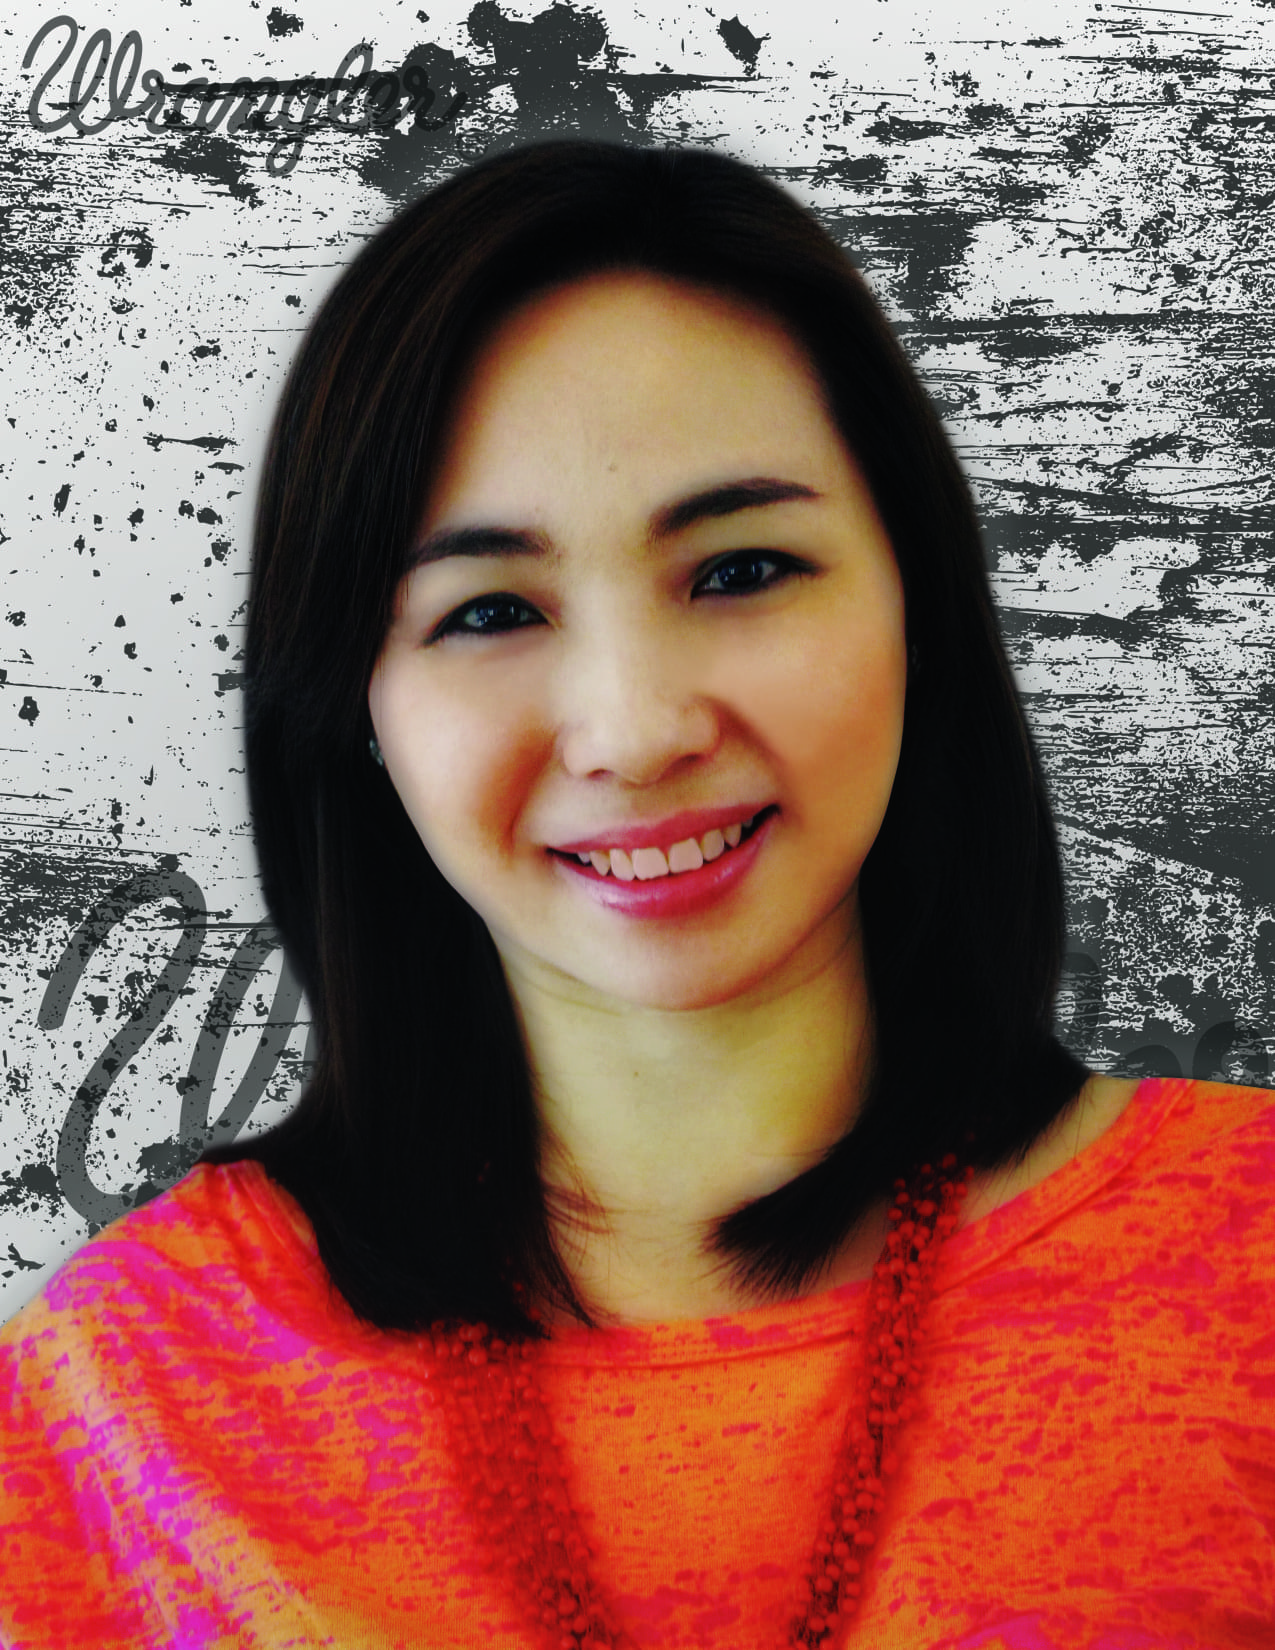 Q&A with Daisy Go, President of Wrangler (Magnificent Jeans Inc.) on Competing in the Crowded Marketplace